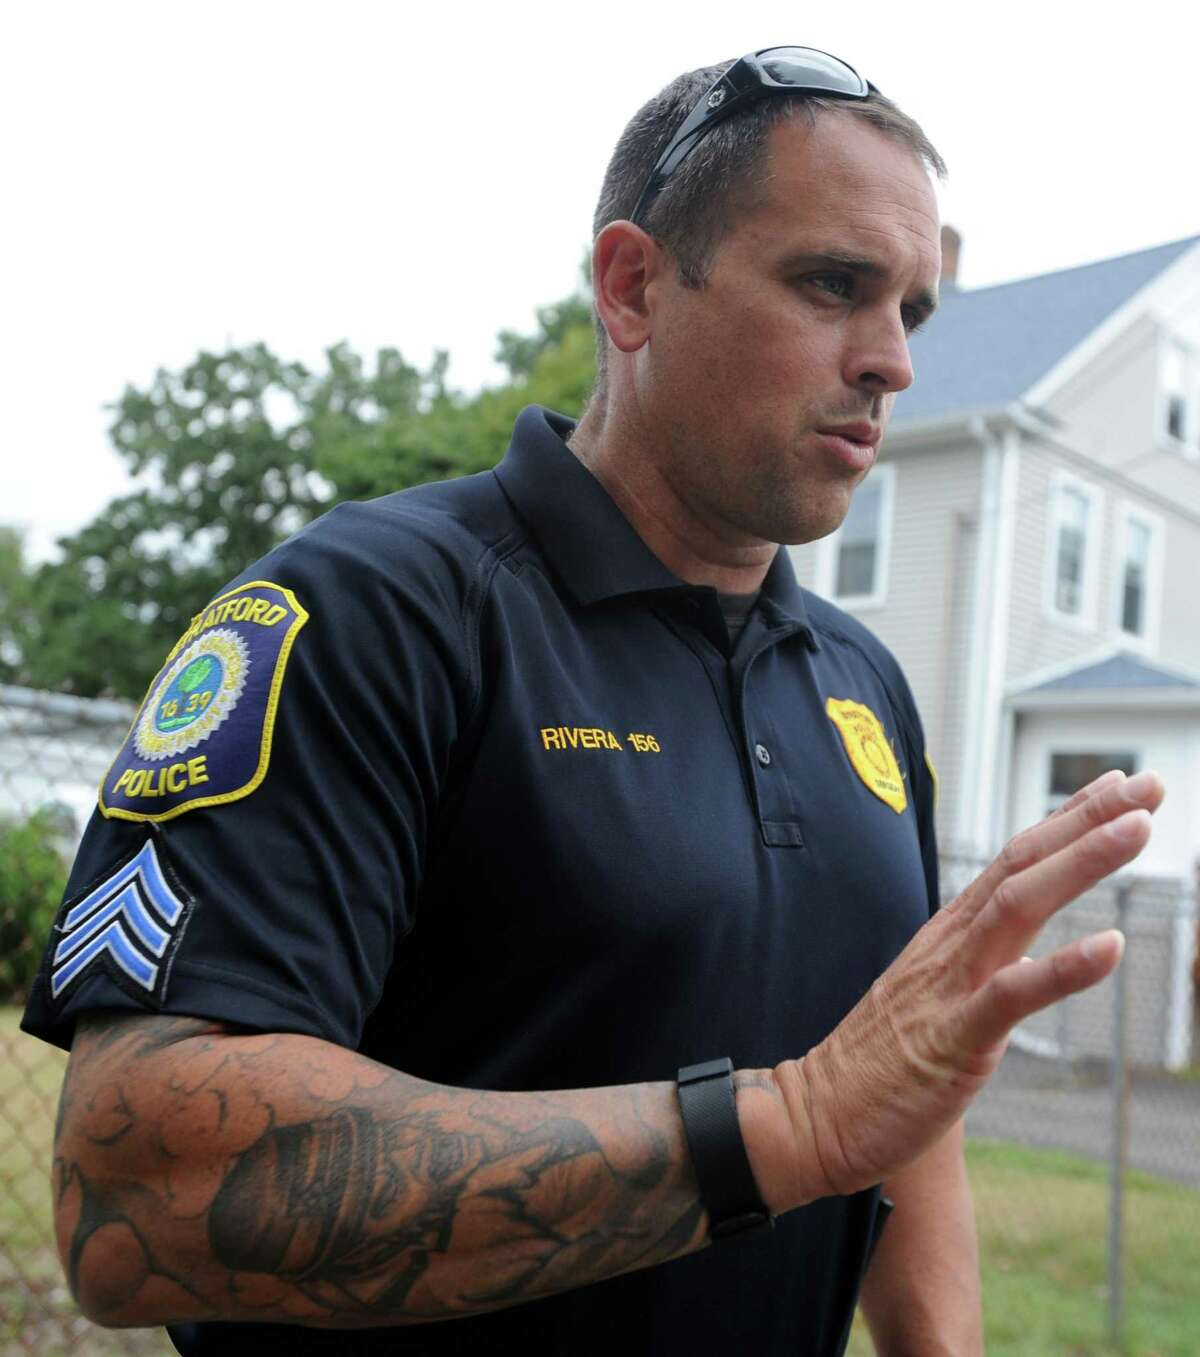 Stratford Police Sgt. Jamie Rivera talks to a reporter in Stratford Friday, Sept. 11, 2015. A town police officer shot a suspect while serving a search warrant at a home at 25 Yarwood St. early Friday morning.